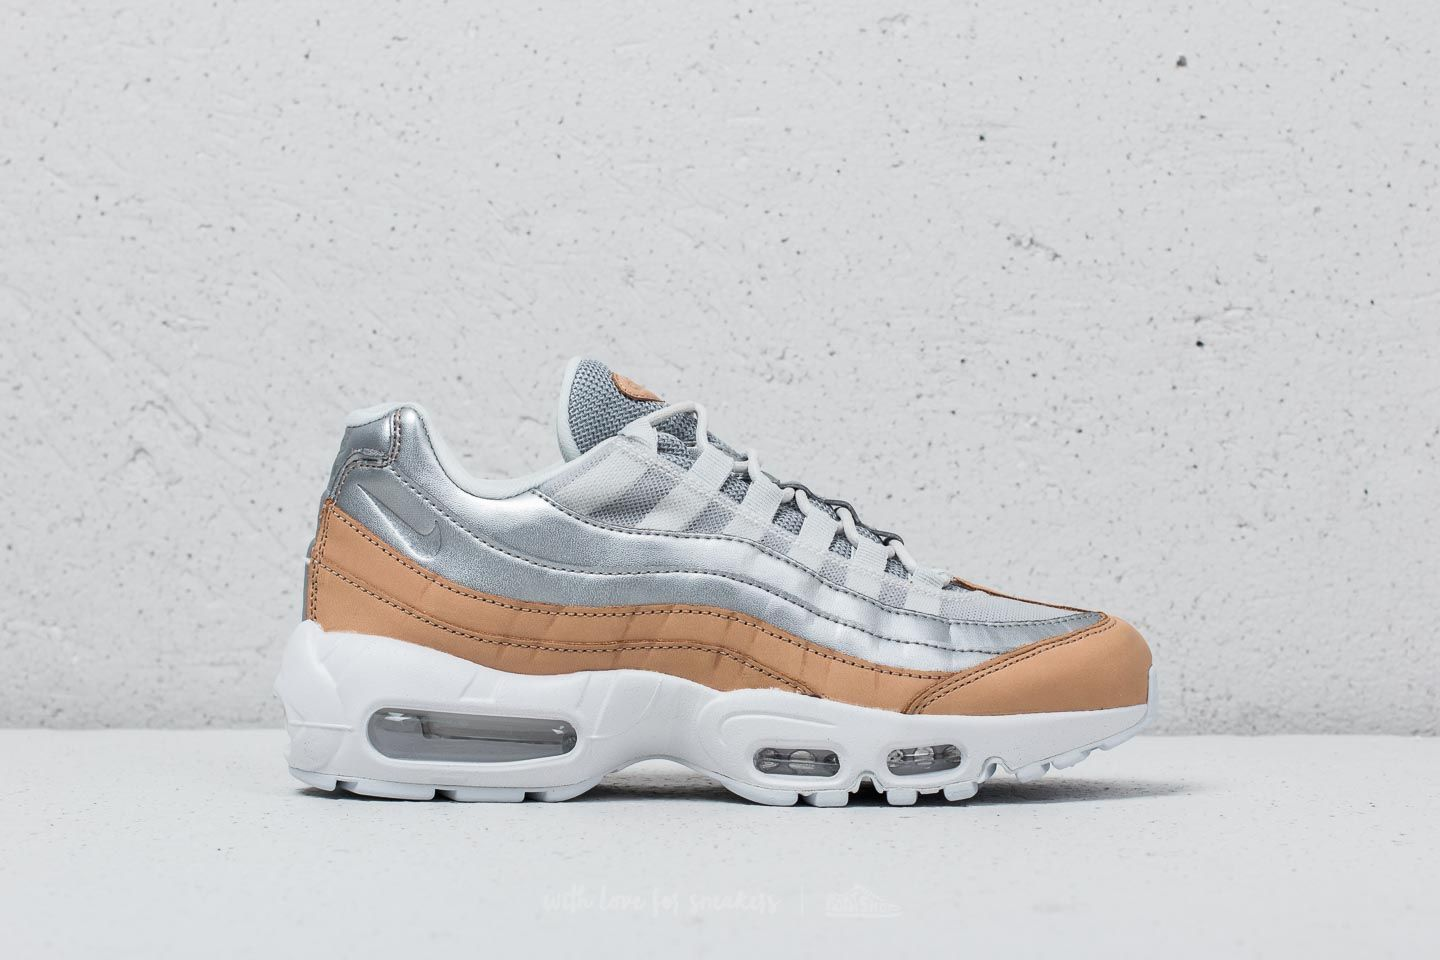 premium selection 160e8 3a76b Nike Air Max 95 SE Premium Pure Platinum  Metallic Silver at a great price  180